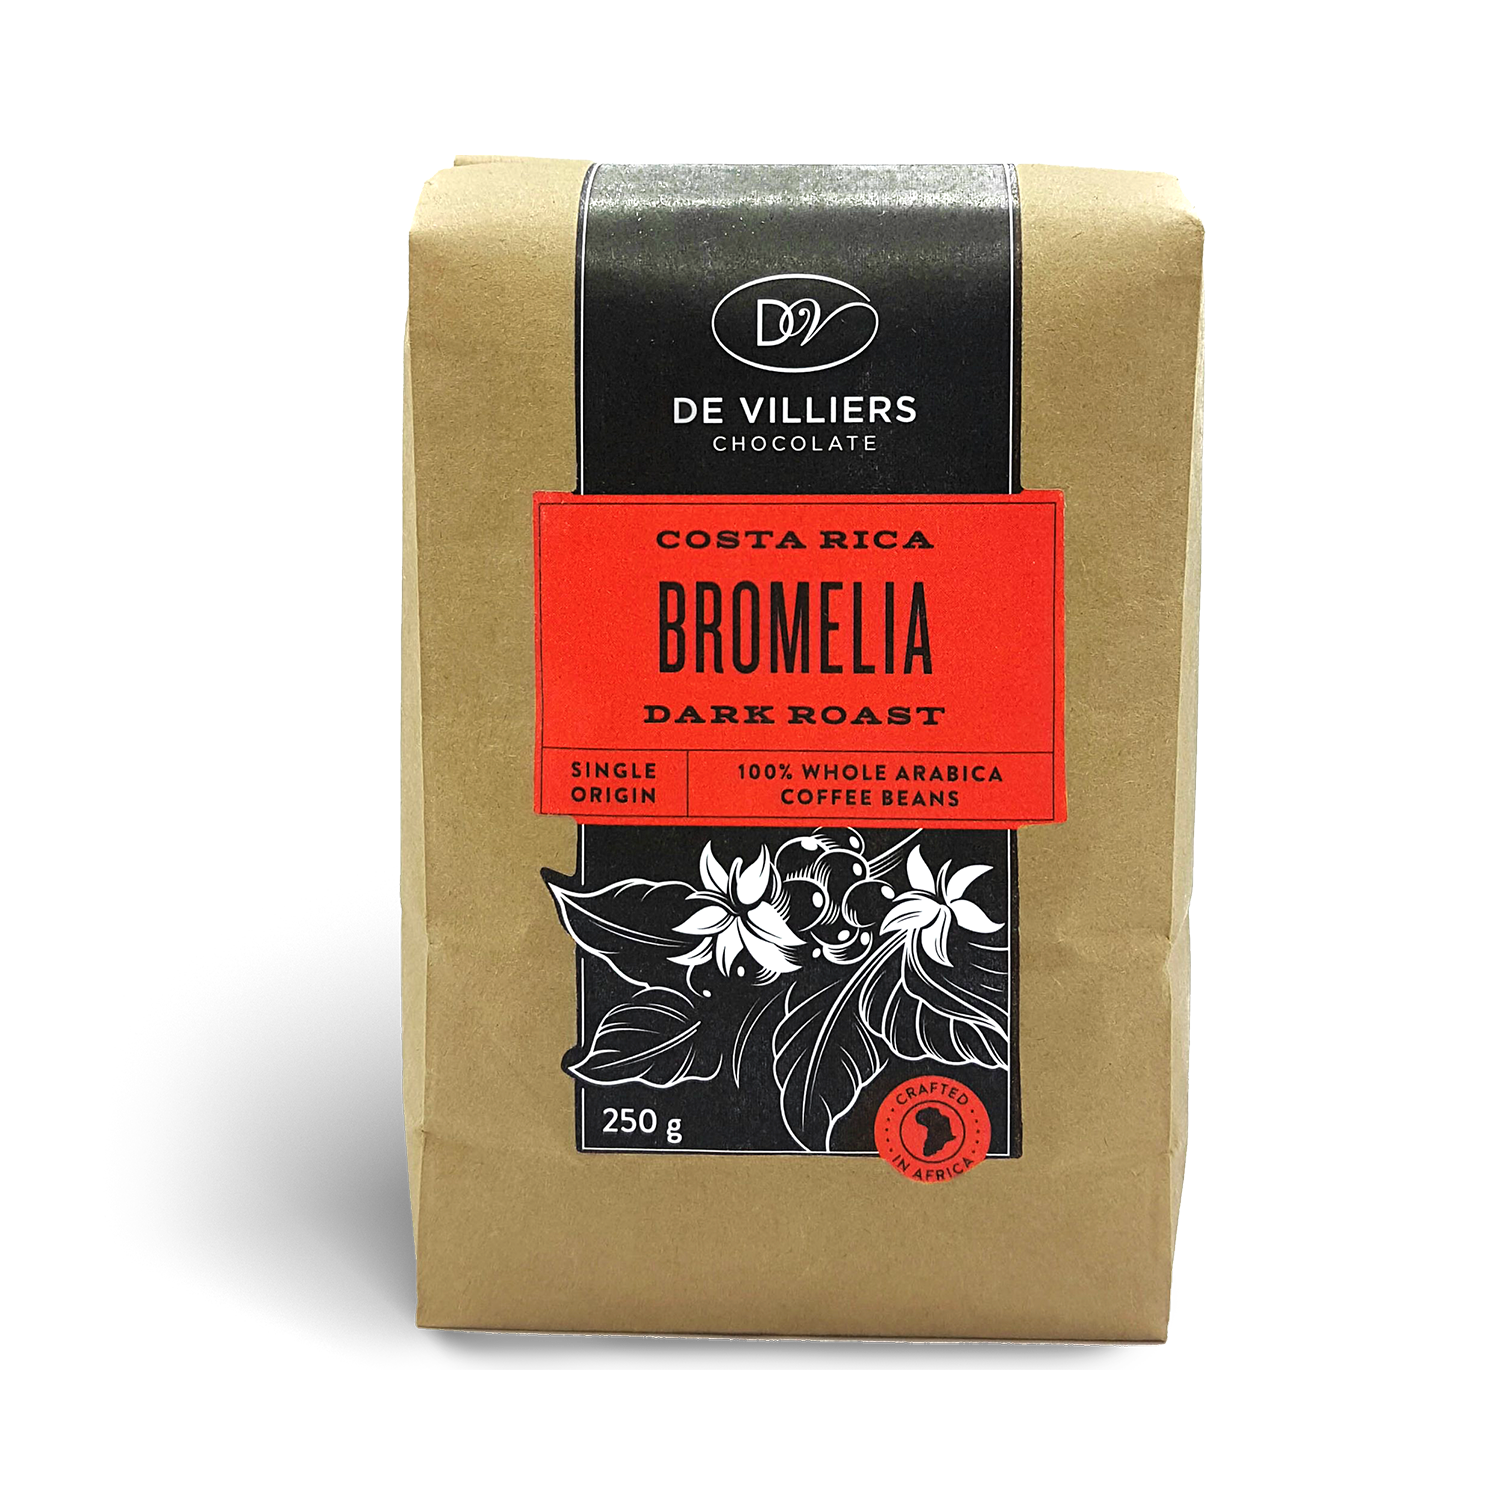 COSTA RICA BROMELIA ROASTED COFFEE BEANS